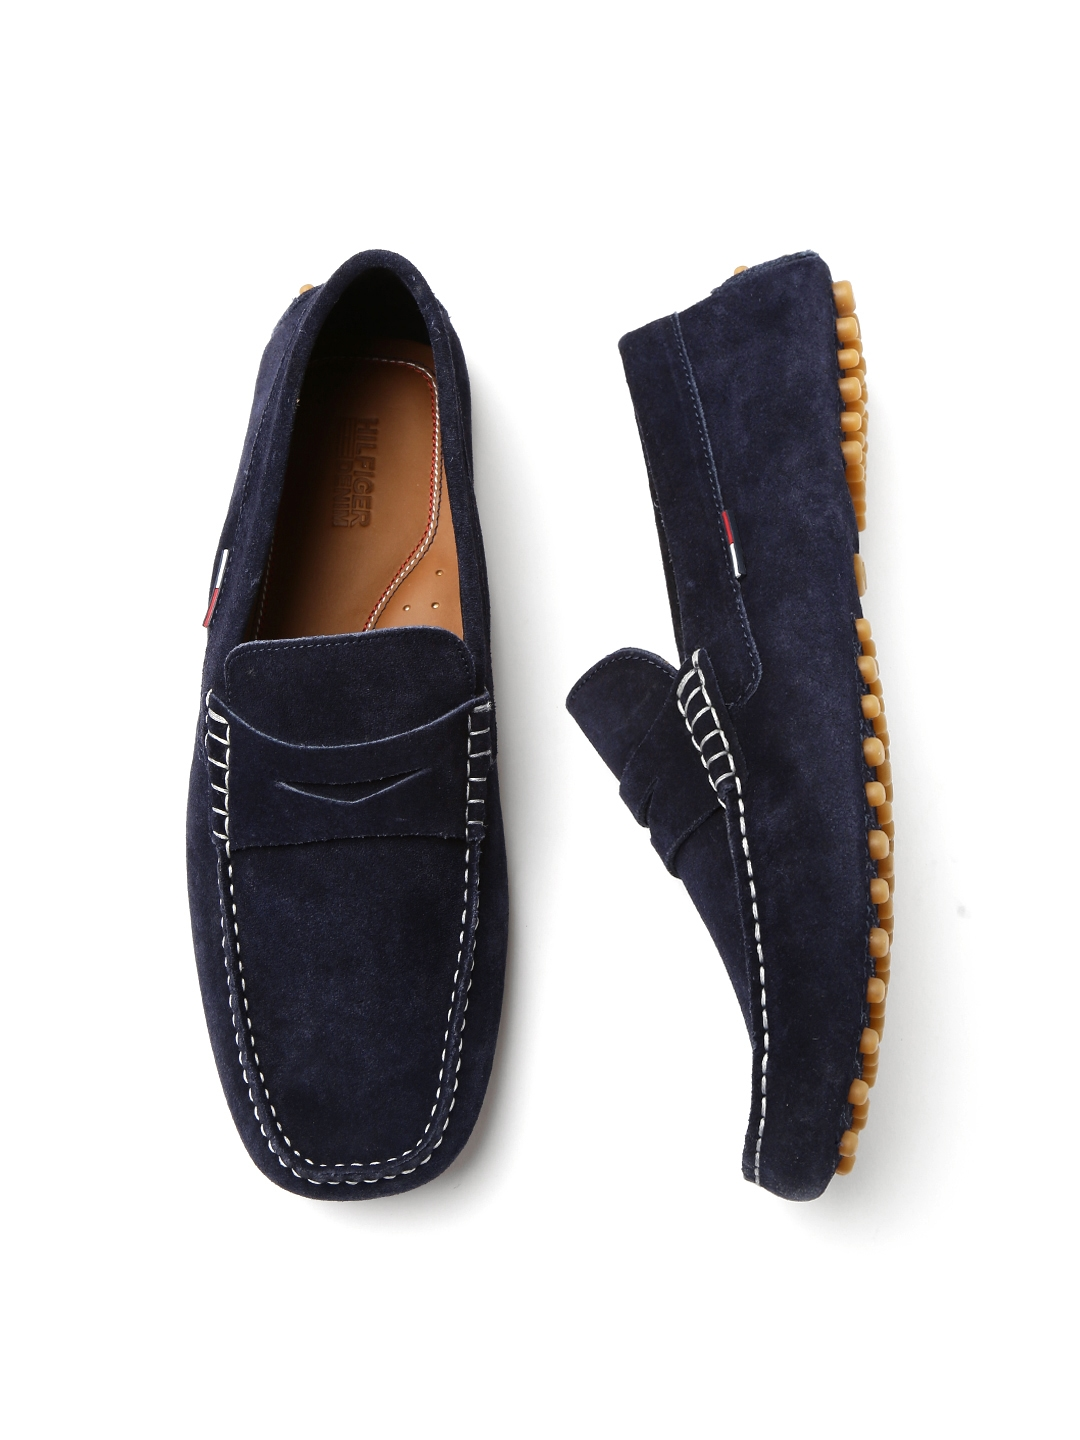 21f9a1151 Buy Tommy Hilfiger Men Navy Blue Solid Suede Driving Shoes - Casual ...